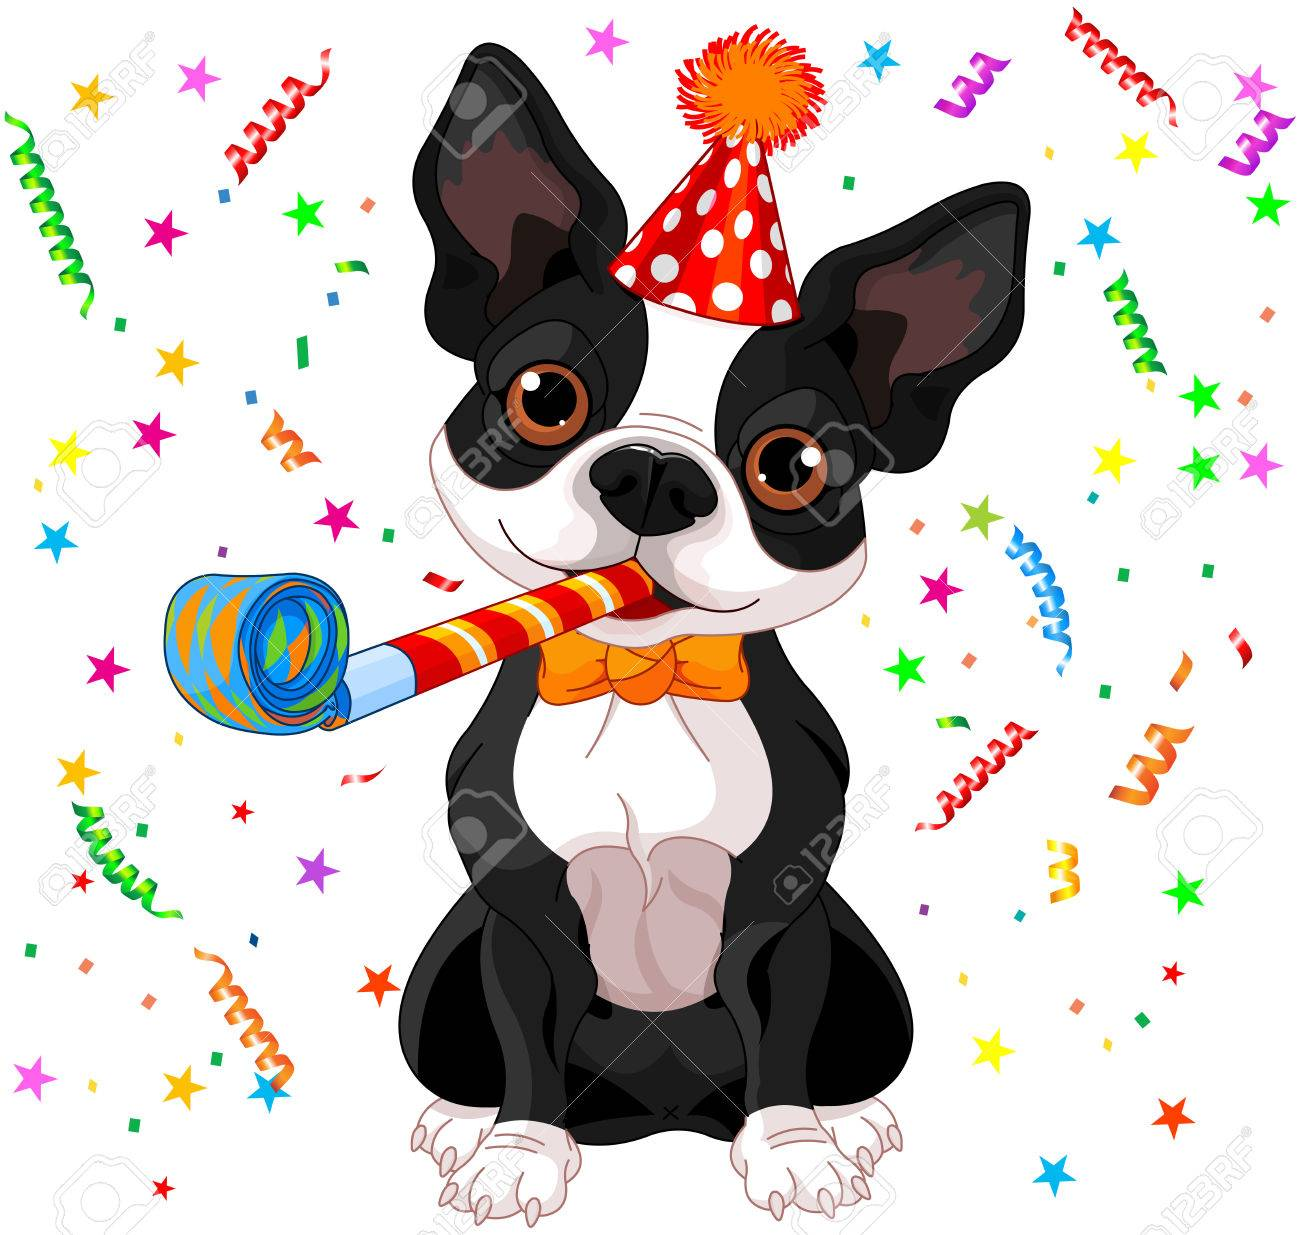 Apprendre à ne pas franchir le portail sans autorisation 35588778-illustration-of-cute-boston-terrier-celebrating